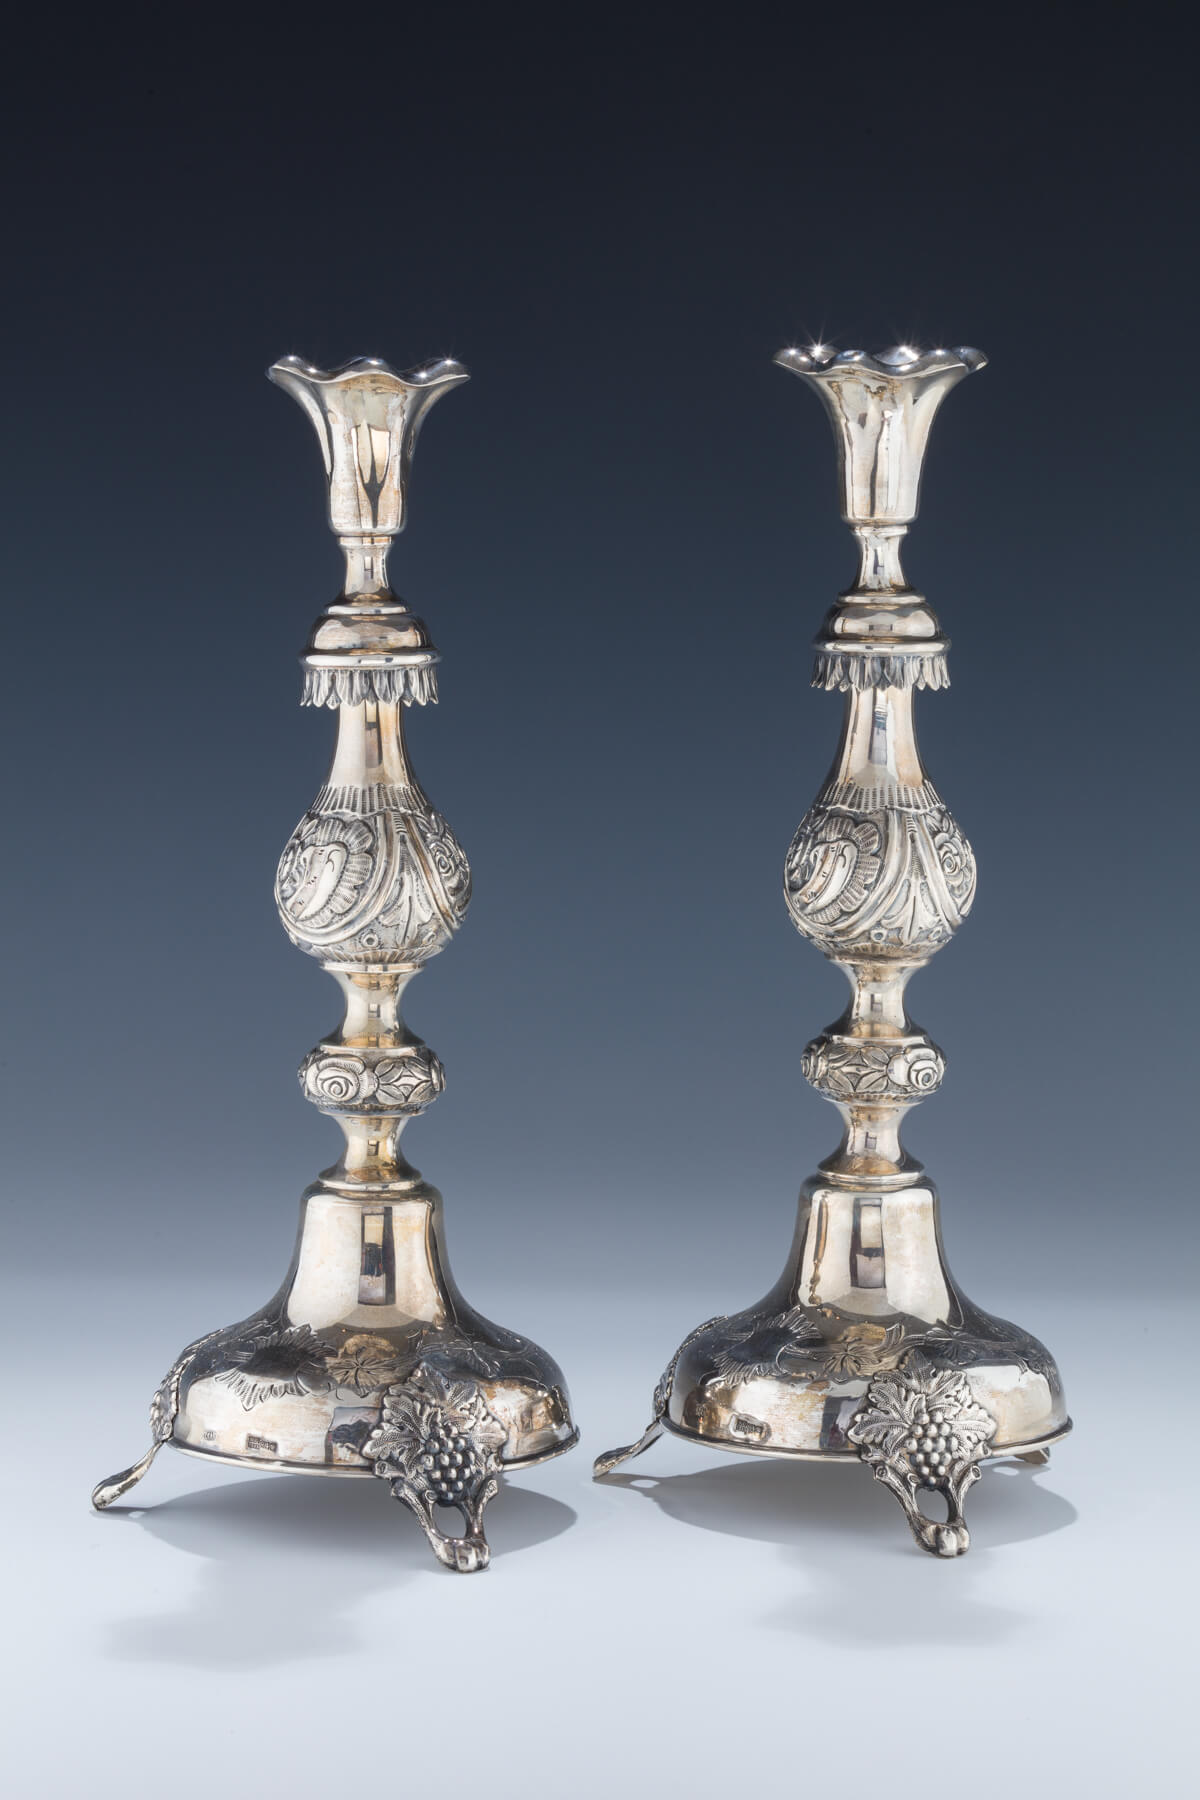 058. A Pair of Silver Candlesticks by Shmuel Skarlat